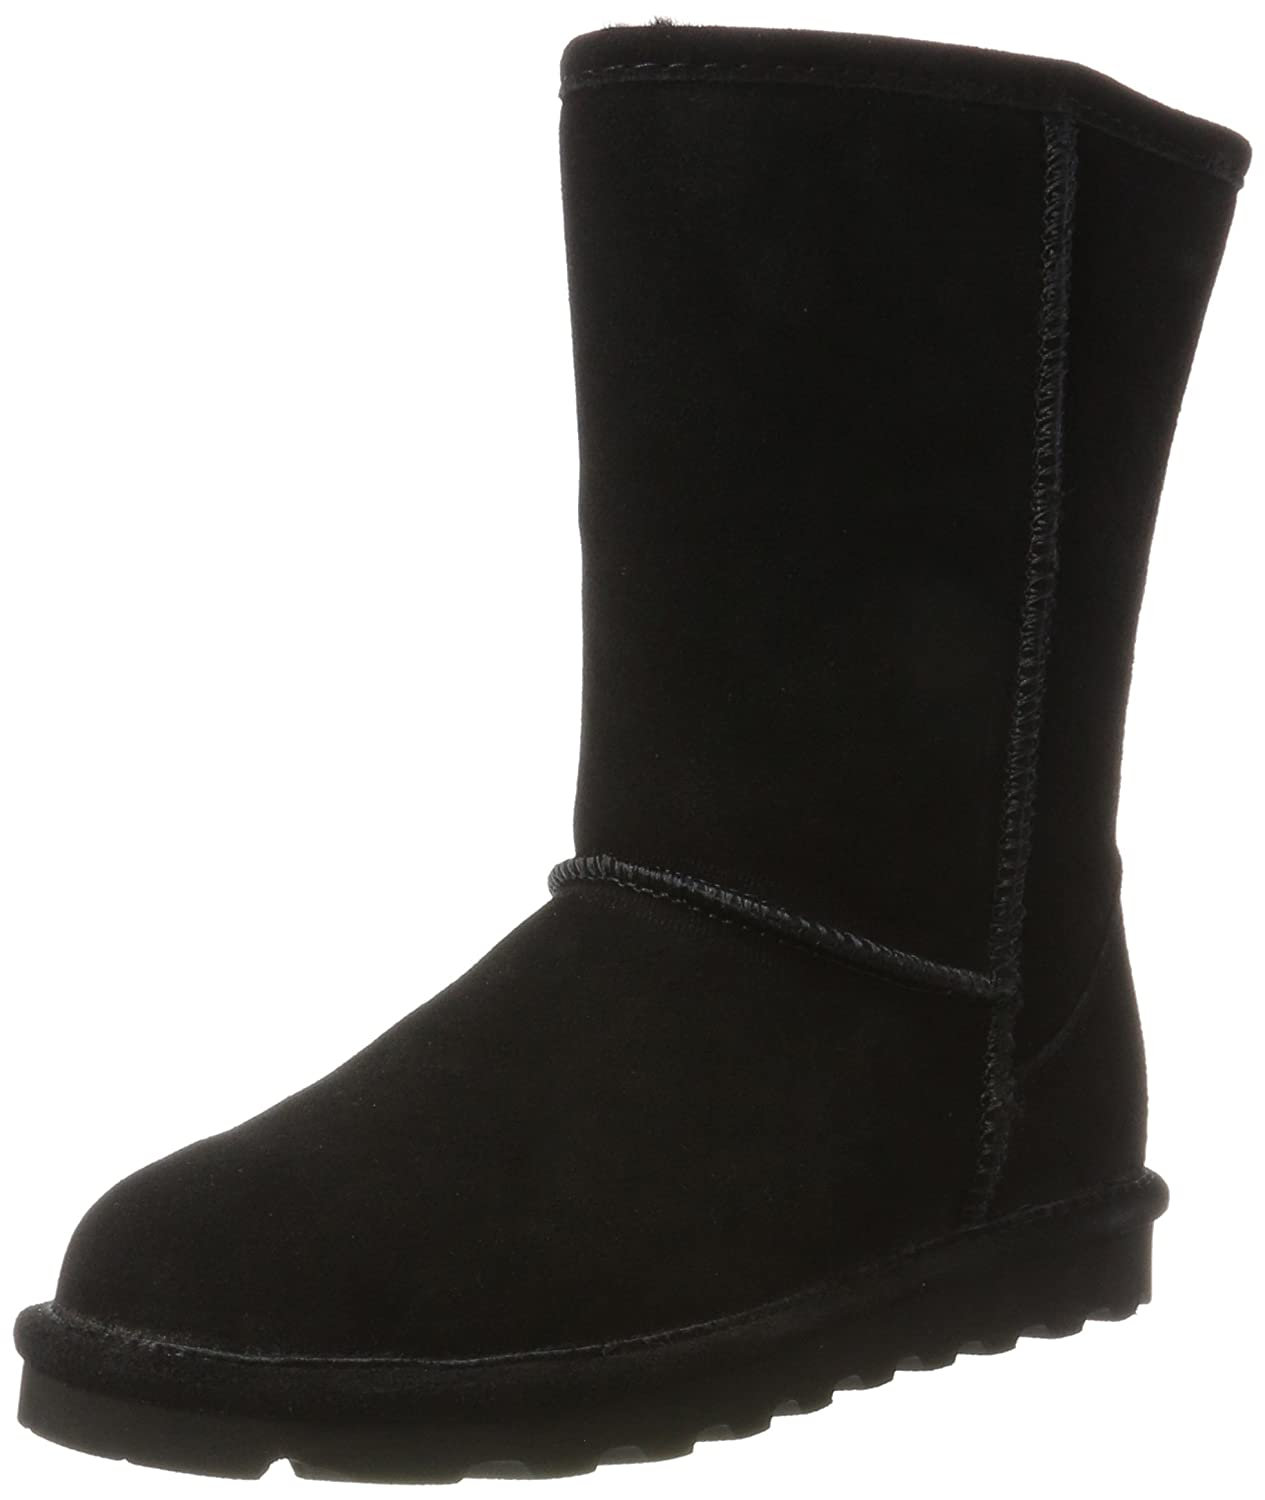 BEARPAW Women's Elle Short Fashion Boot B06XRGTWPS 12 B(M) US|Black Ii